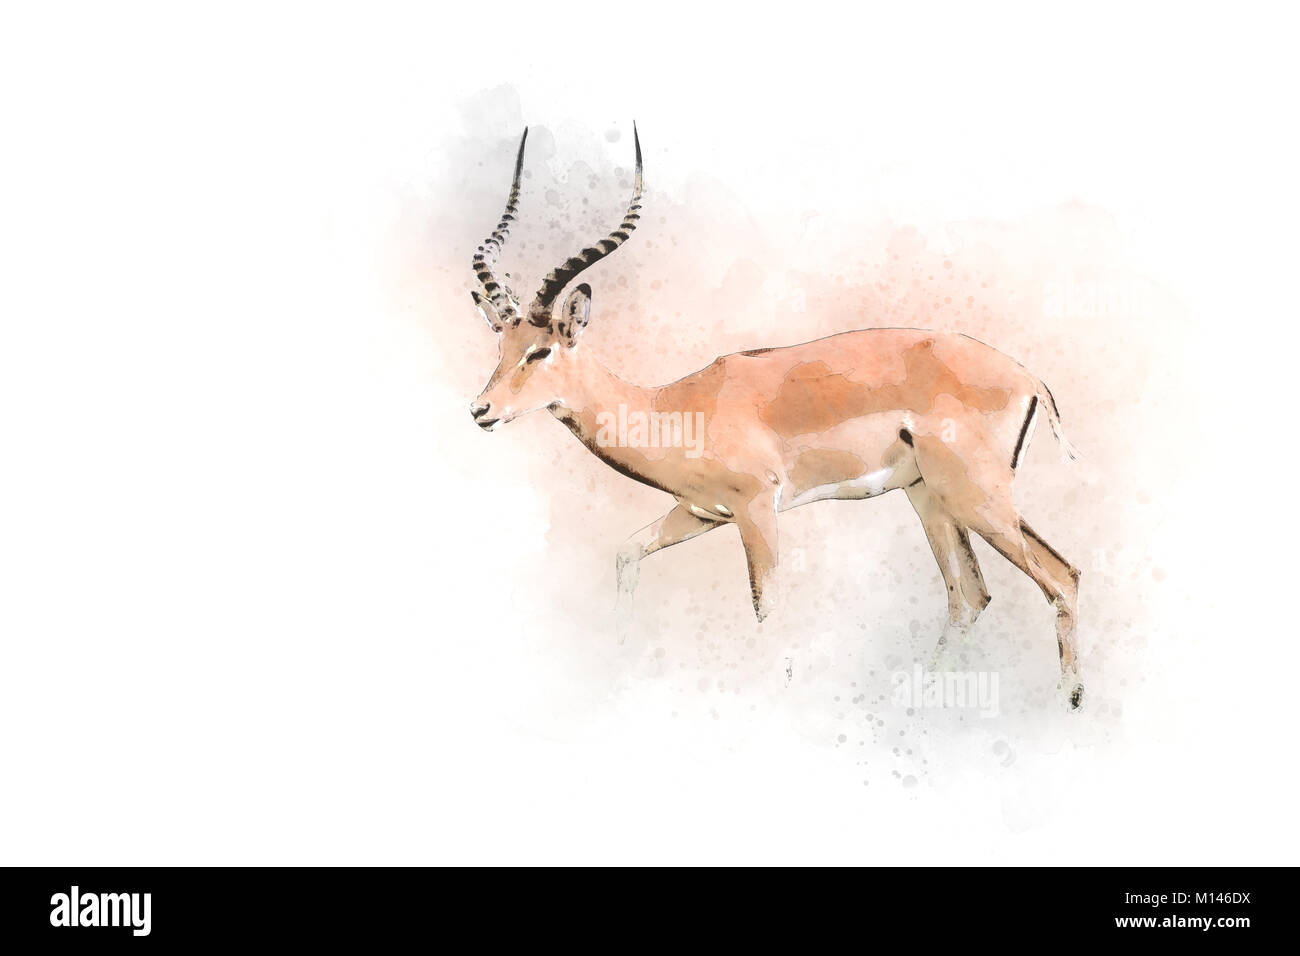 Digitally enhanced image of a side view of a male  impala (Aepyceros melampus). Photographed in Africa, Tanzania, - Stock Image